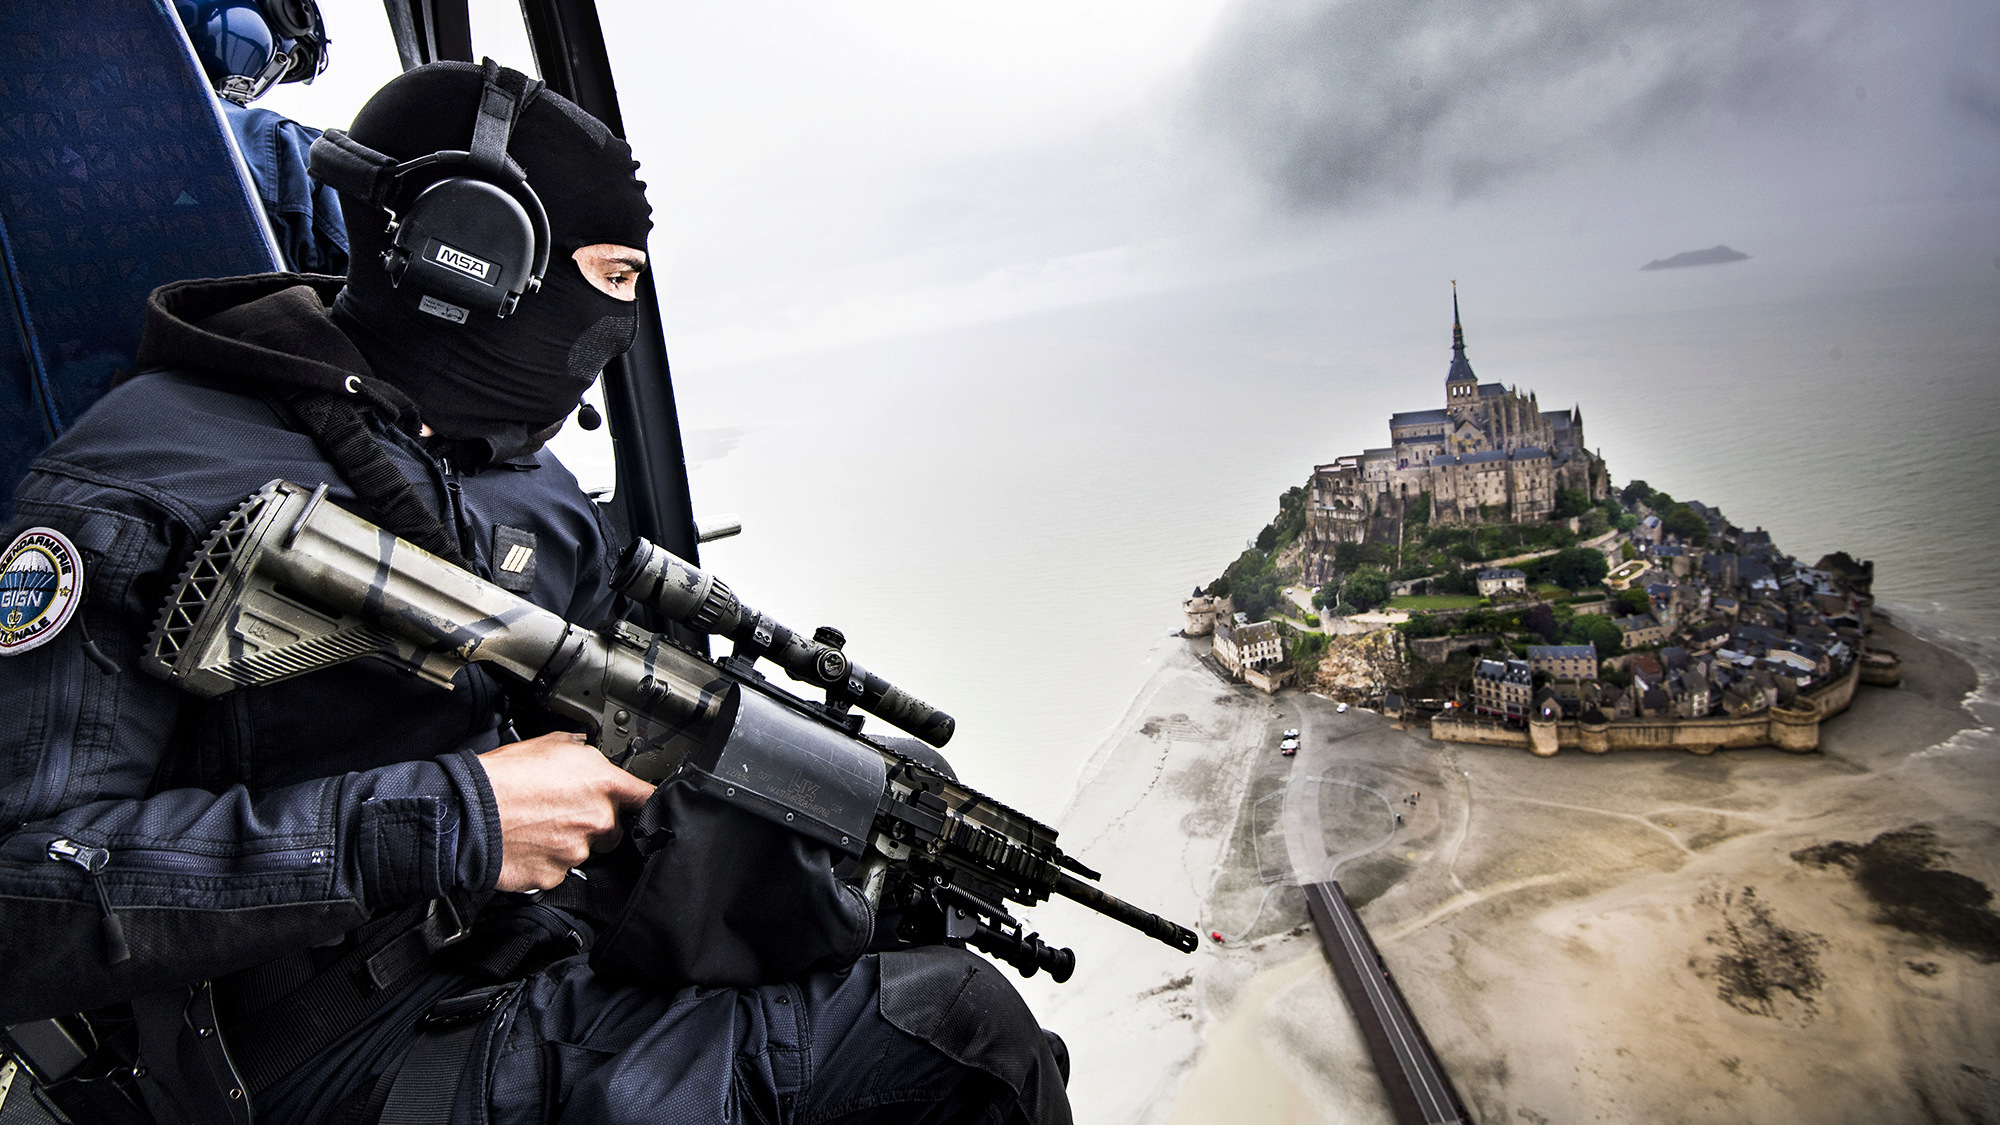 Armée Française / French Armed Forces - Page 30 Gign-m10